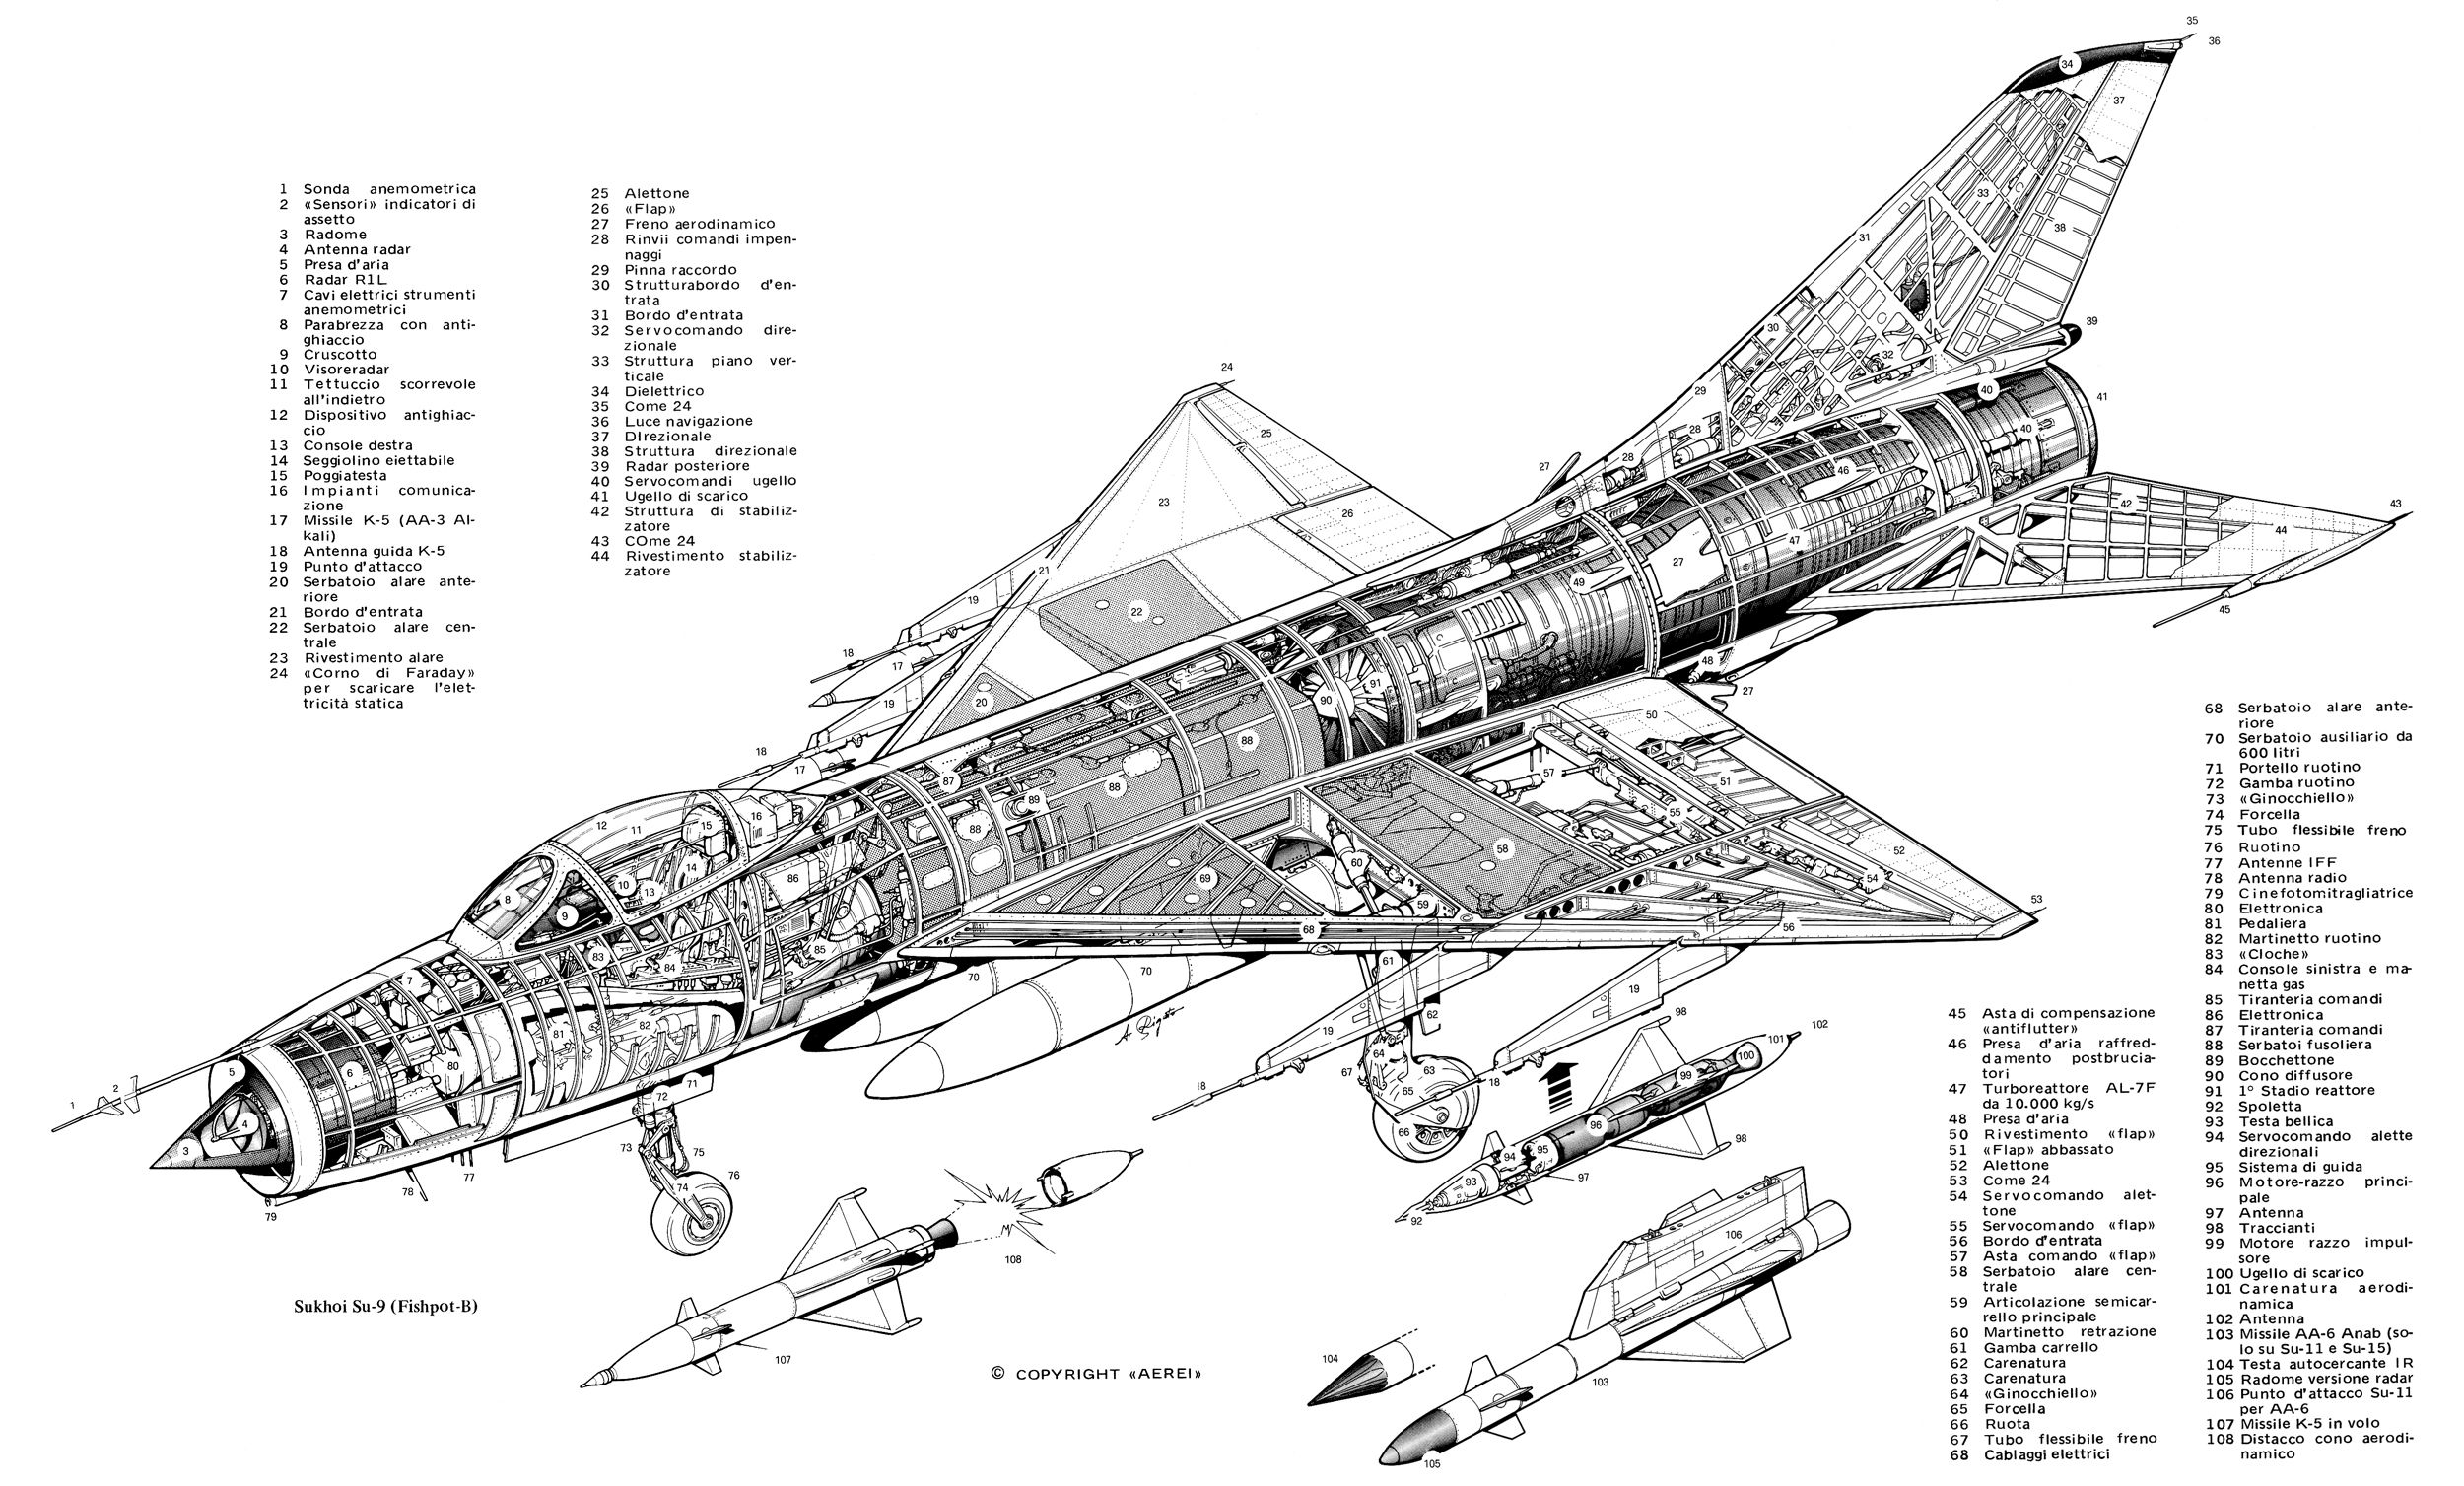 Pin By Roland Turner On Sukhoi Su 9 And Su 11